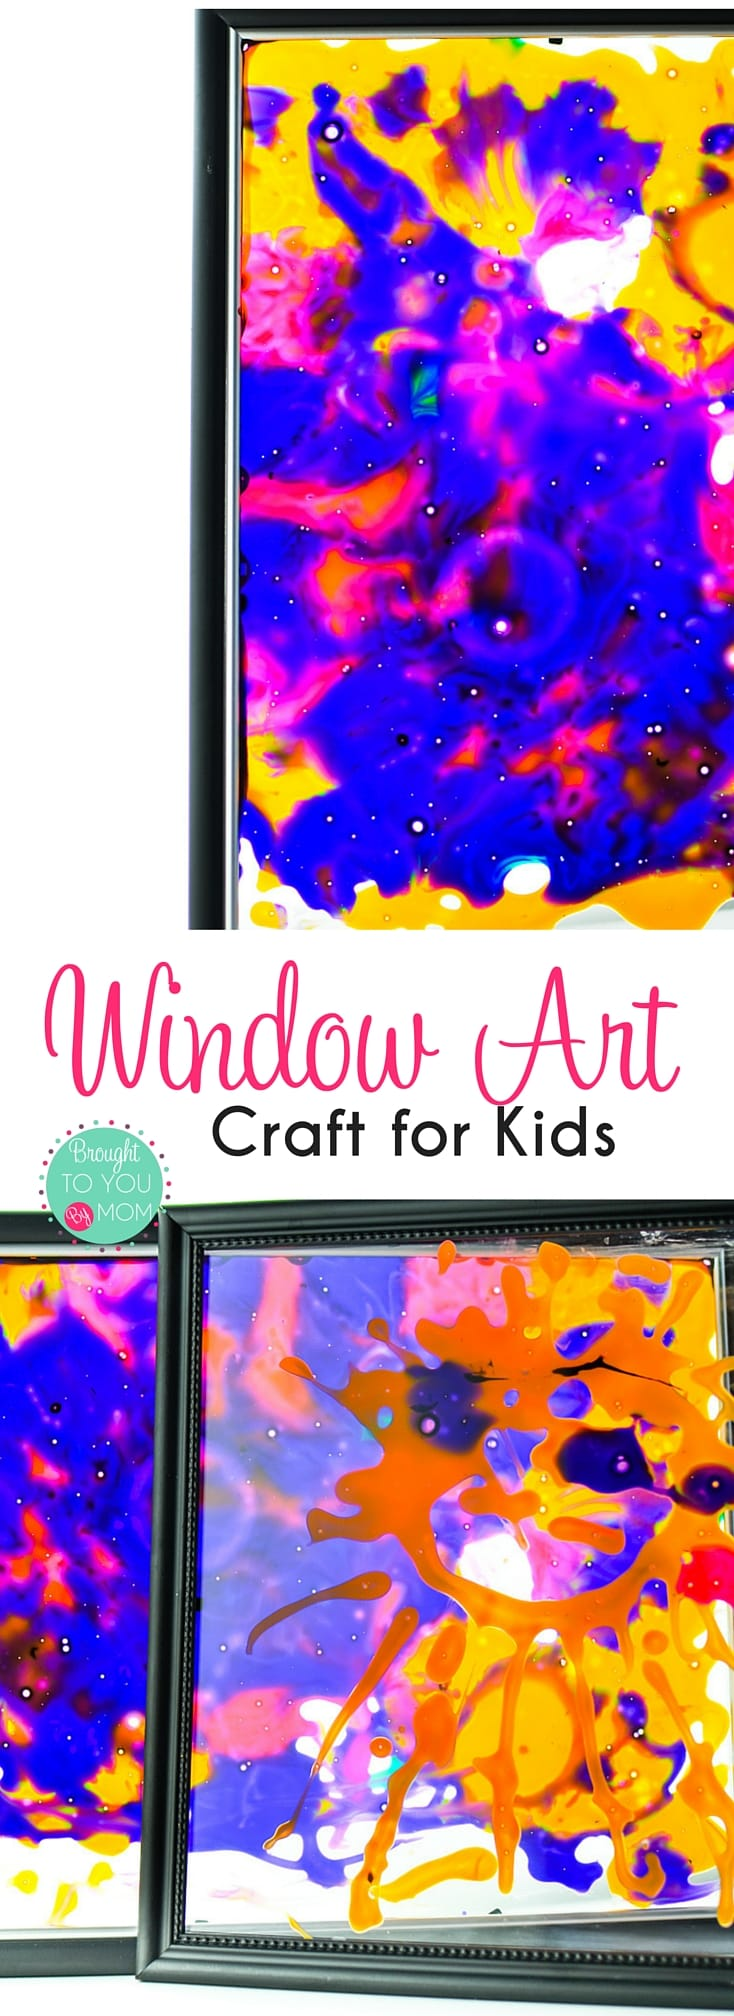 This fun kids activity and boredom buster is a fun way to give a stained glass look to any picture frame. This Window Frame Art Craft for Kids is great to display as sun-catchers or enjoy near any light source.